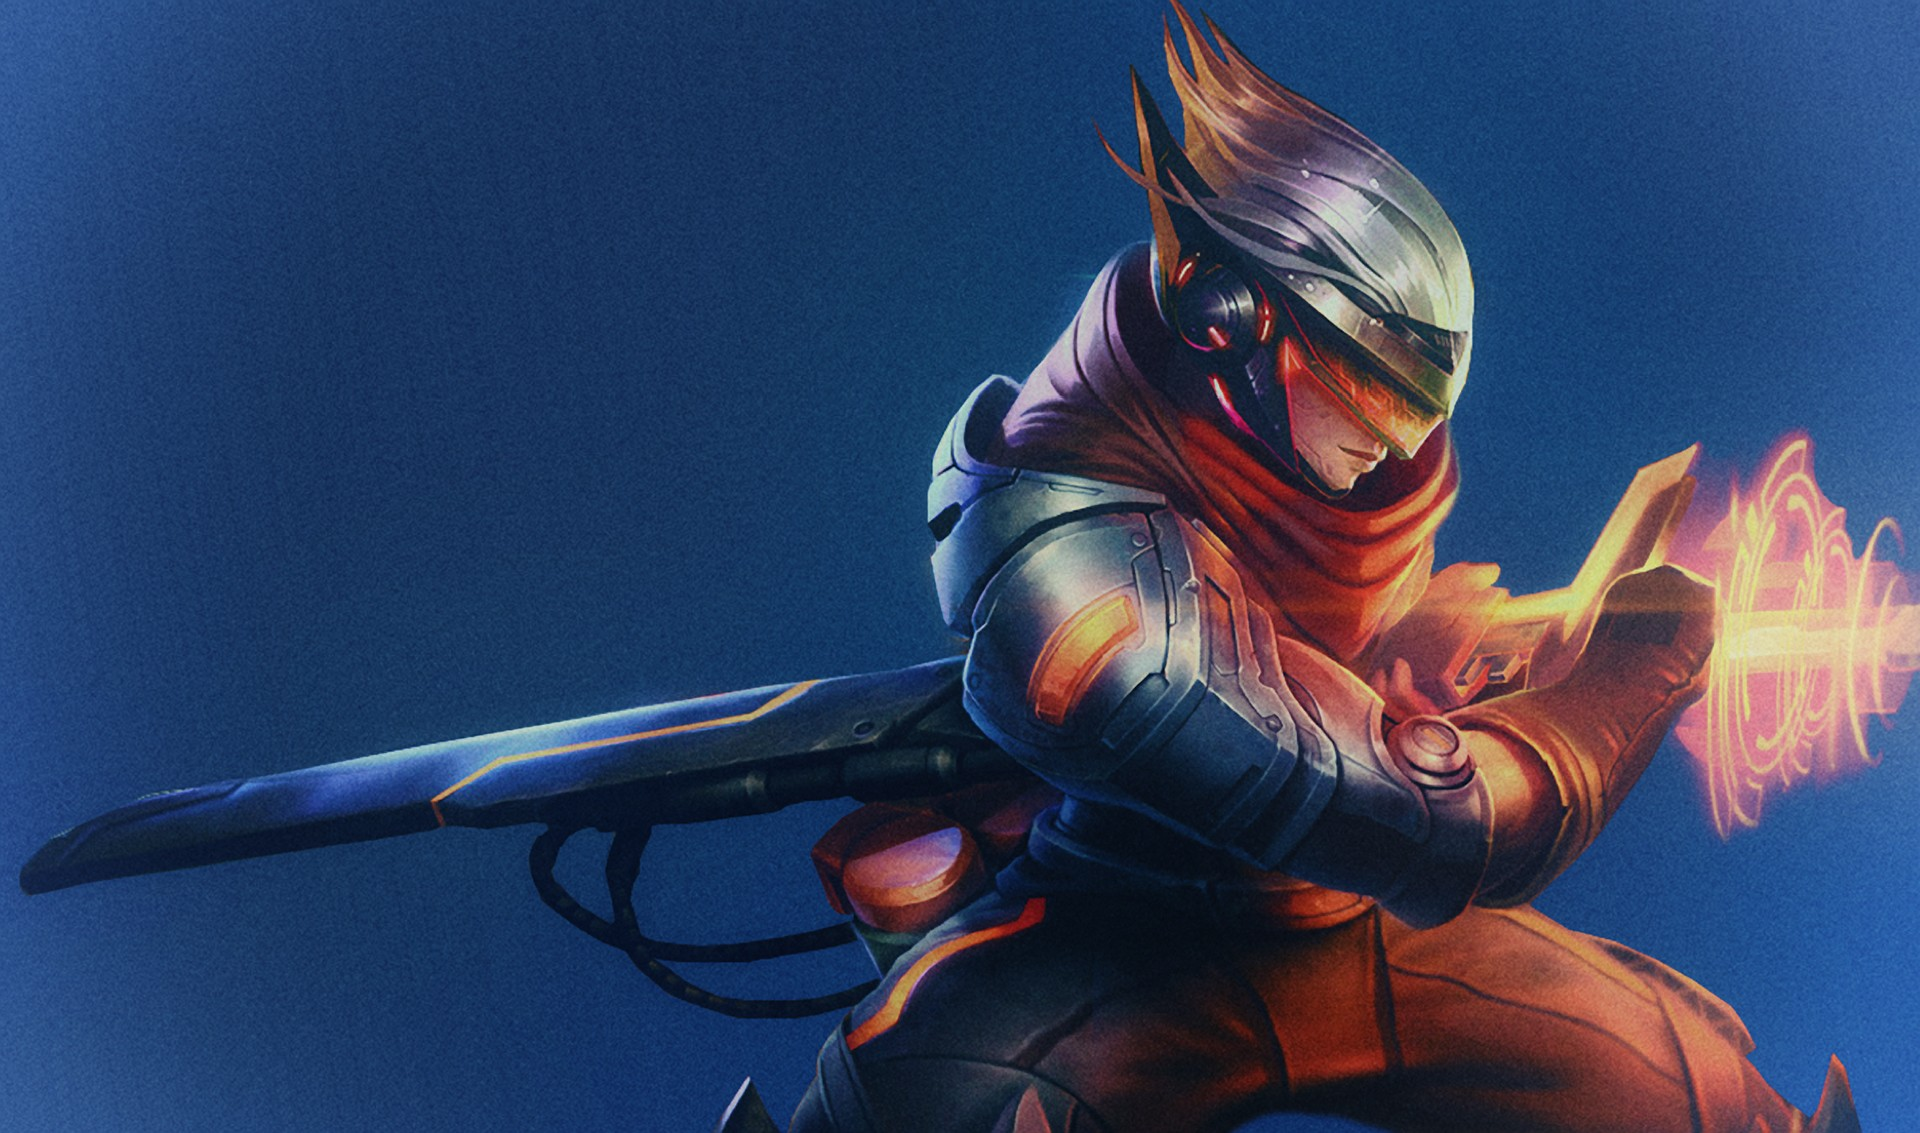 PROJECT: Yasuo - LoLWallpapers